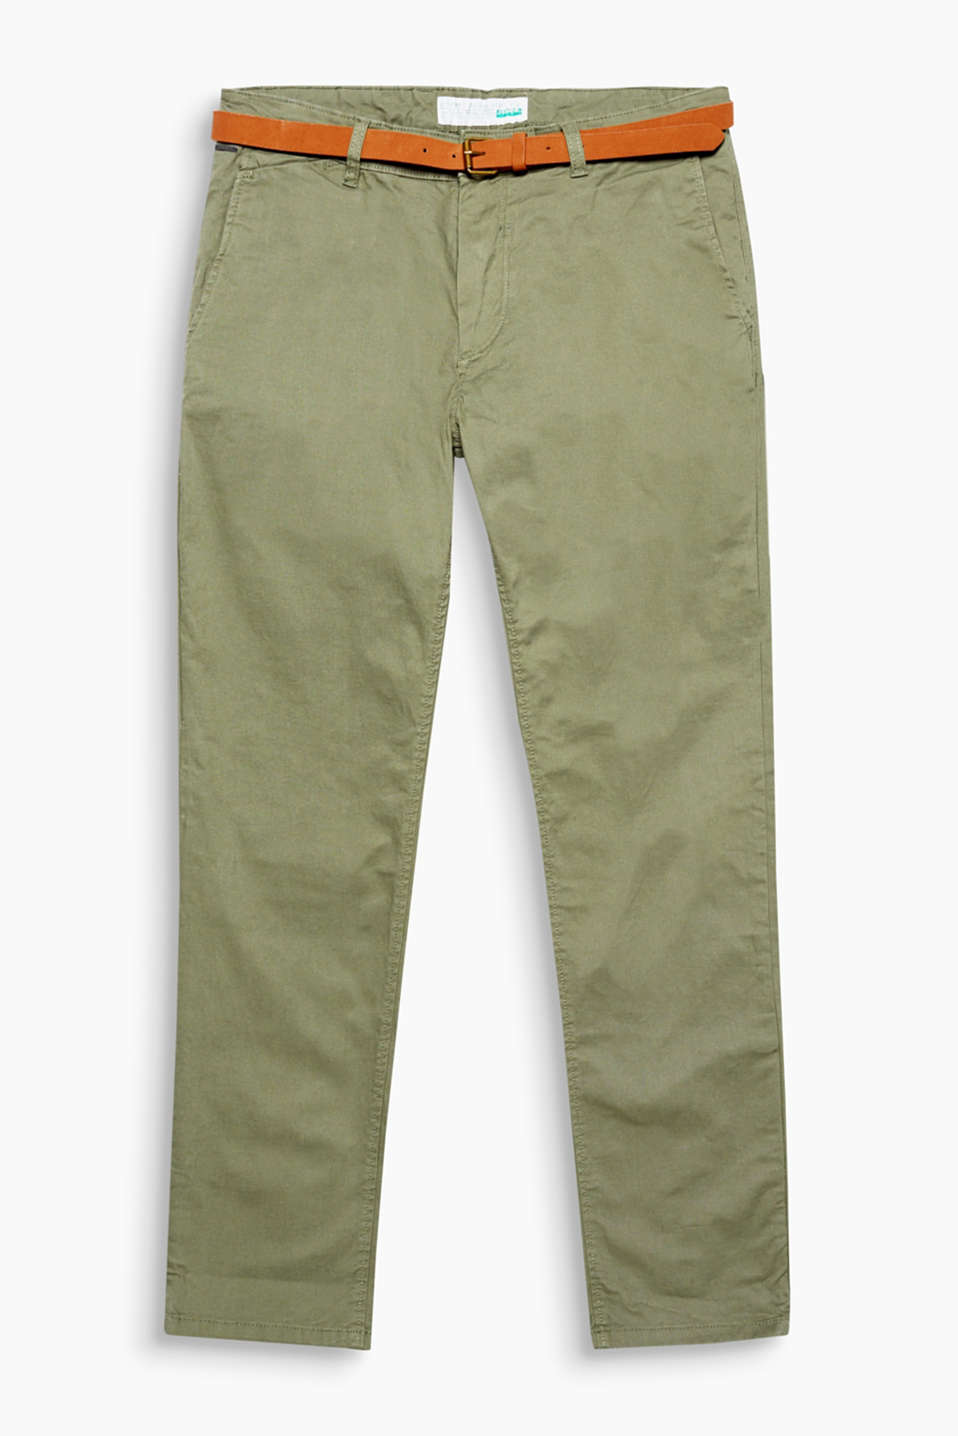 Comfy, stretchy chinos made of organic cotton with a narrow, faux suede belt